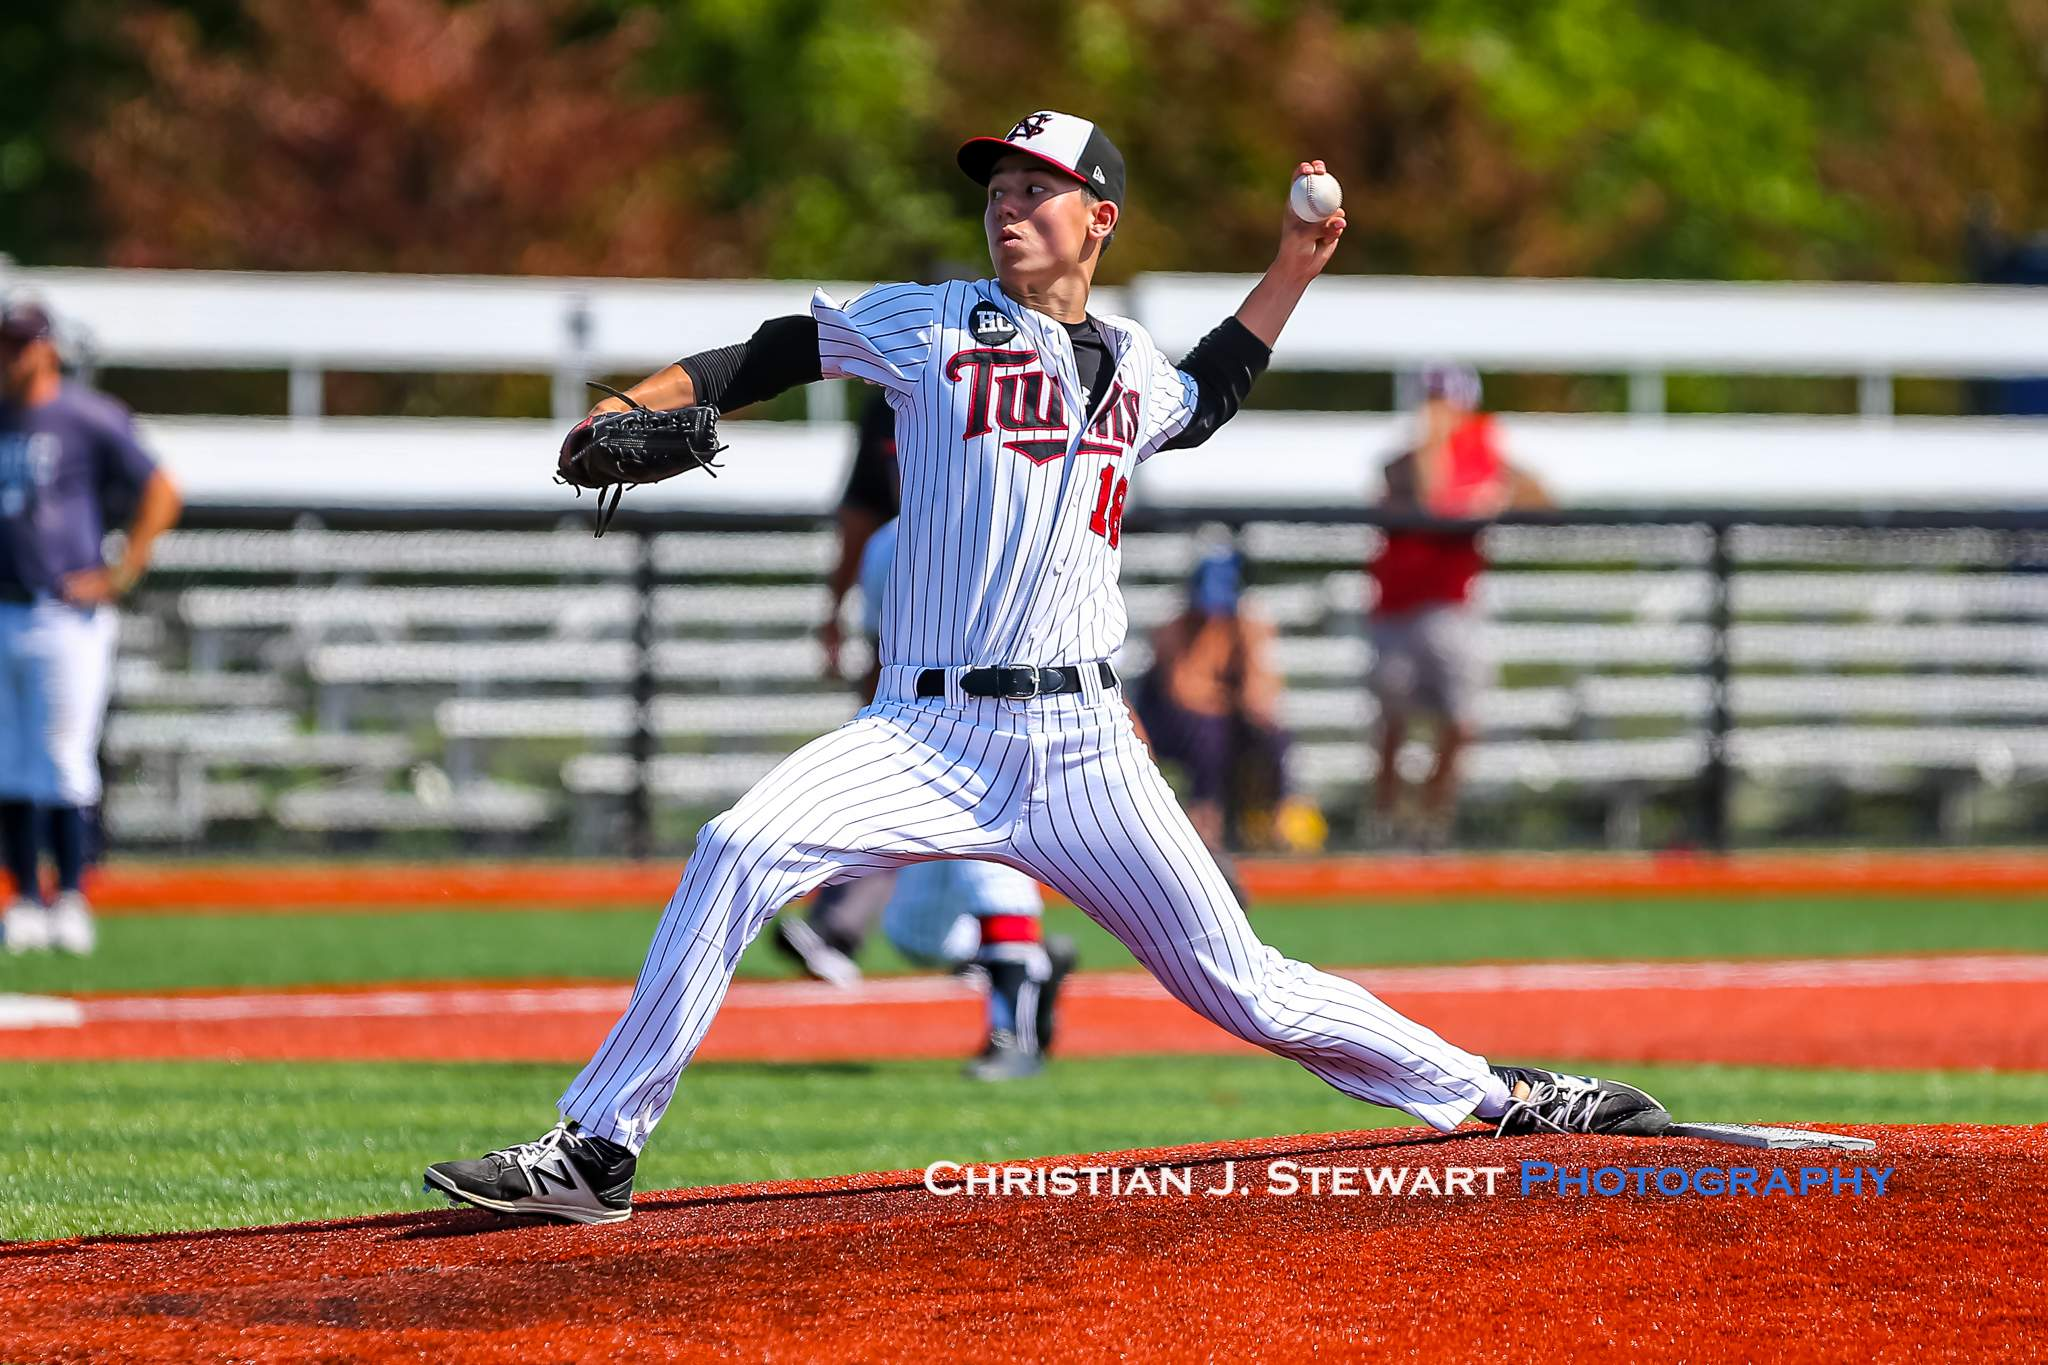 The Twins Joseph Sinclair got the win Sunday, going 5 full innings and giving up just two Thunder runs on five hits (Photo: Christian J. Stewart)